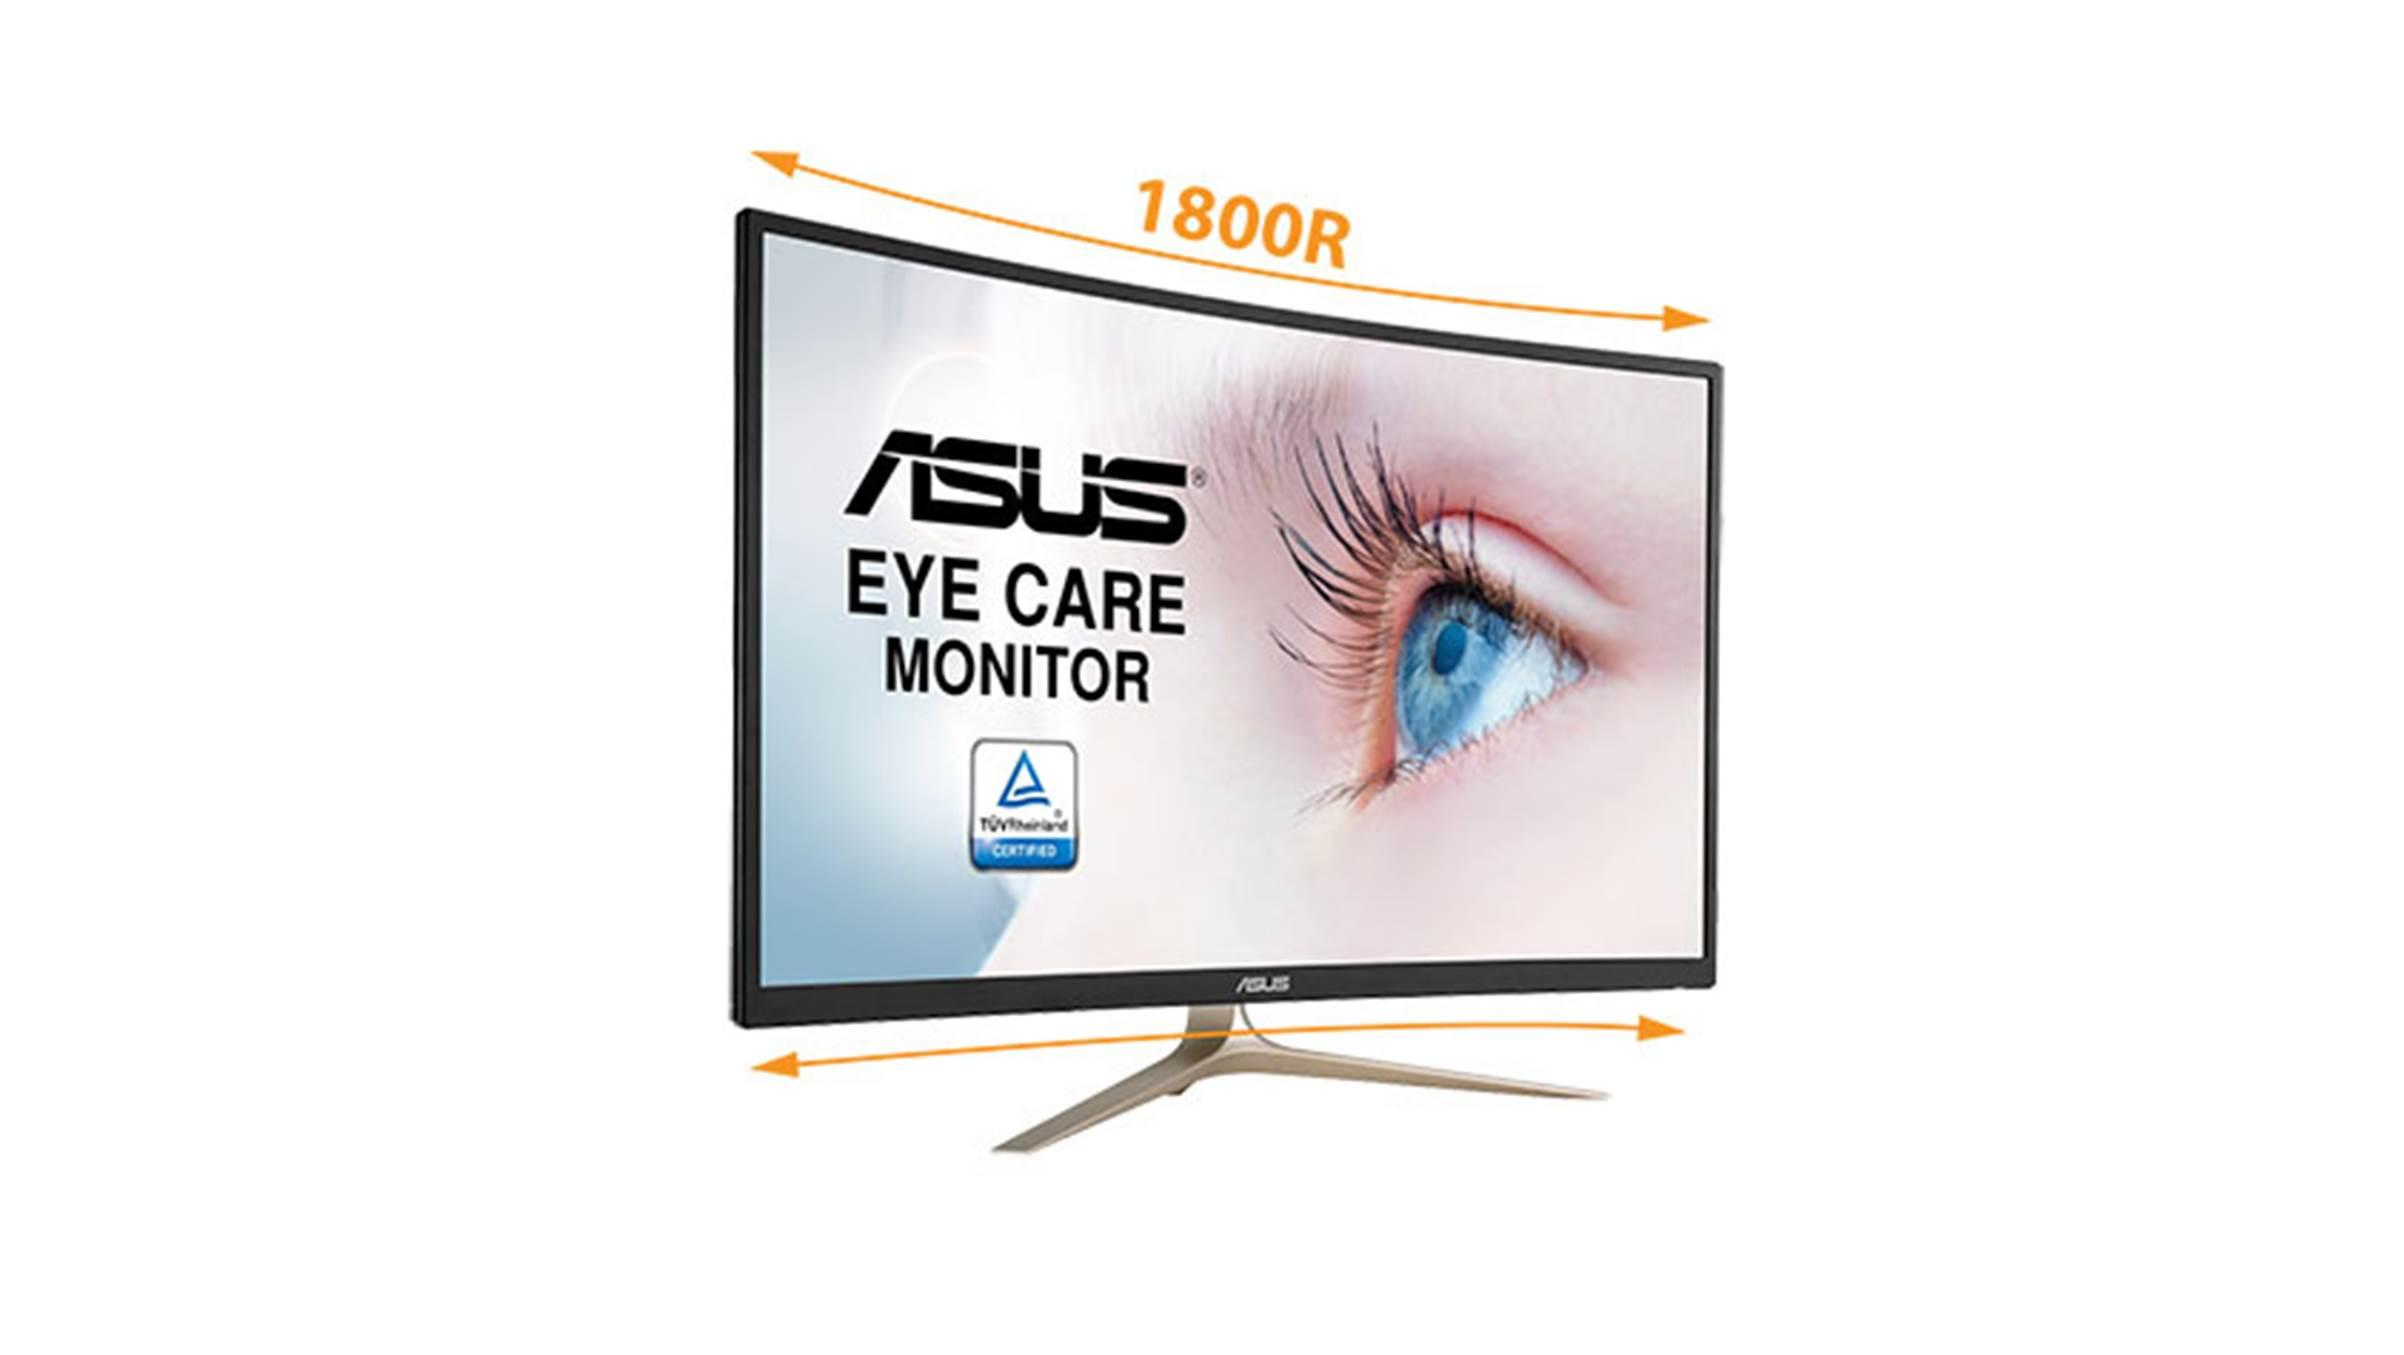 asus eye care monitor review